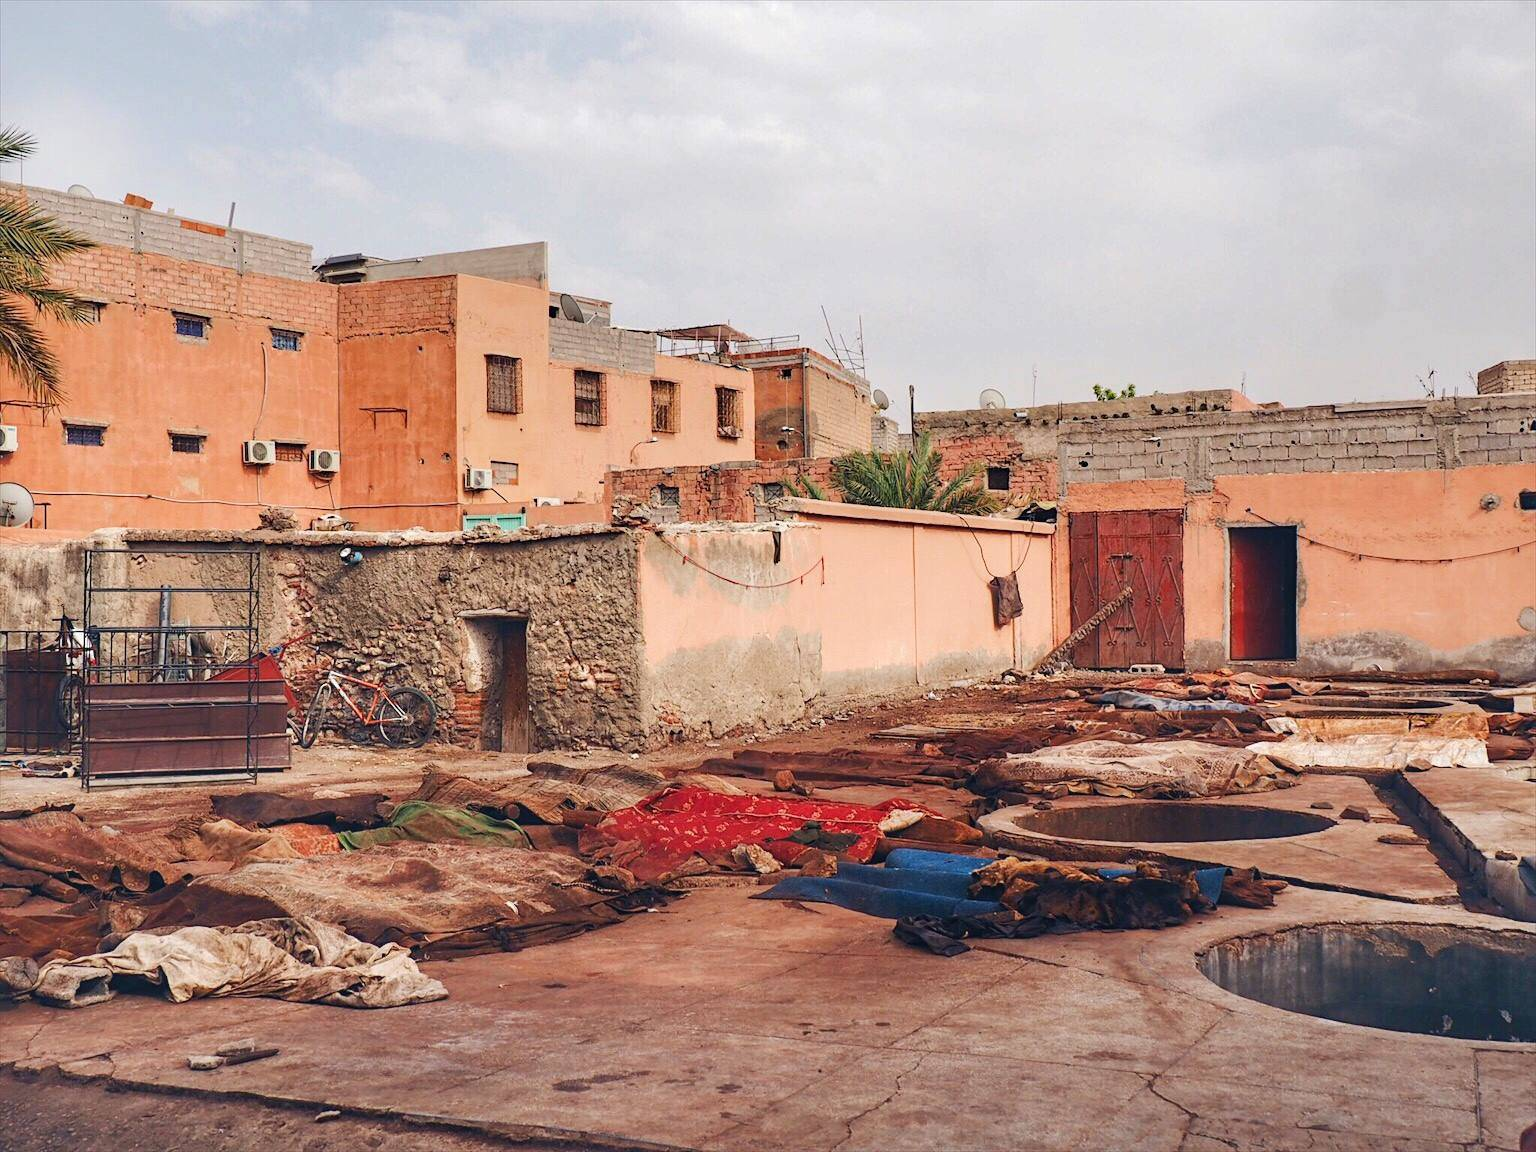 How to visit the tanneries in Marrakech without getting scammed